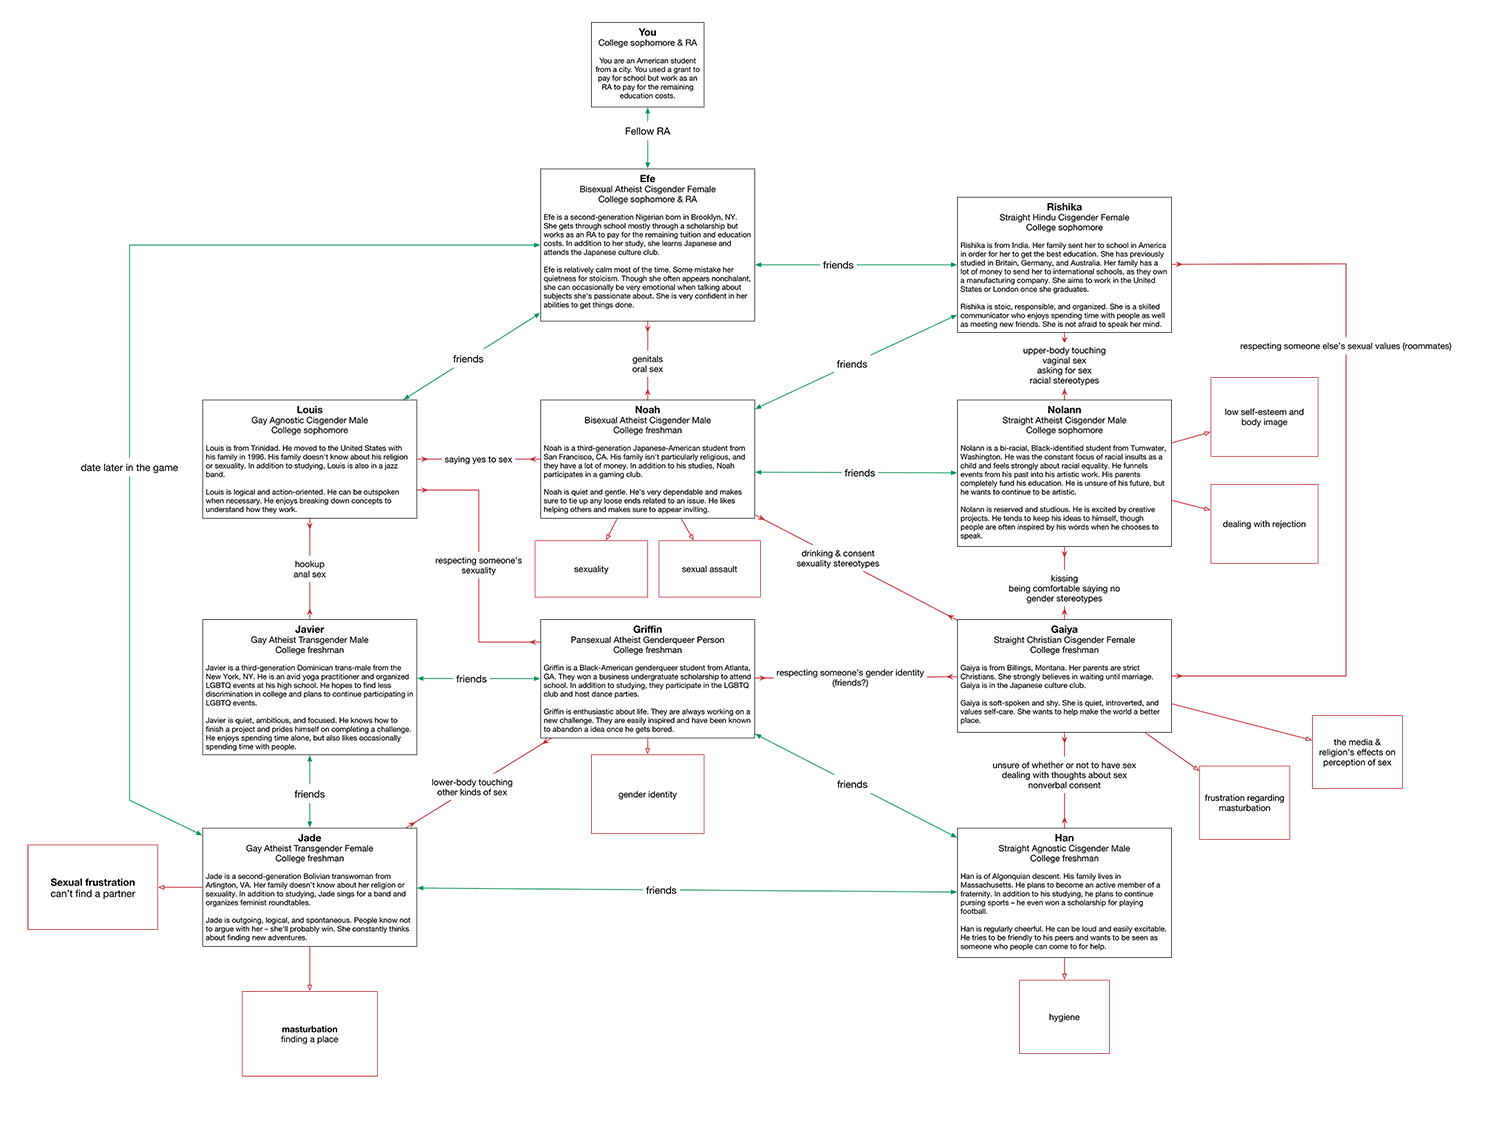 next i created a diagram based on the list of conflicts i mentioned last week this diagram shows character relationships as well as the conflicts they